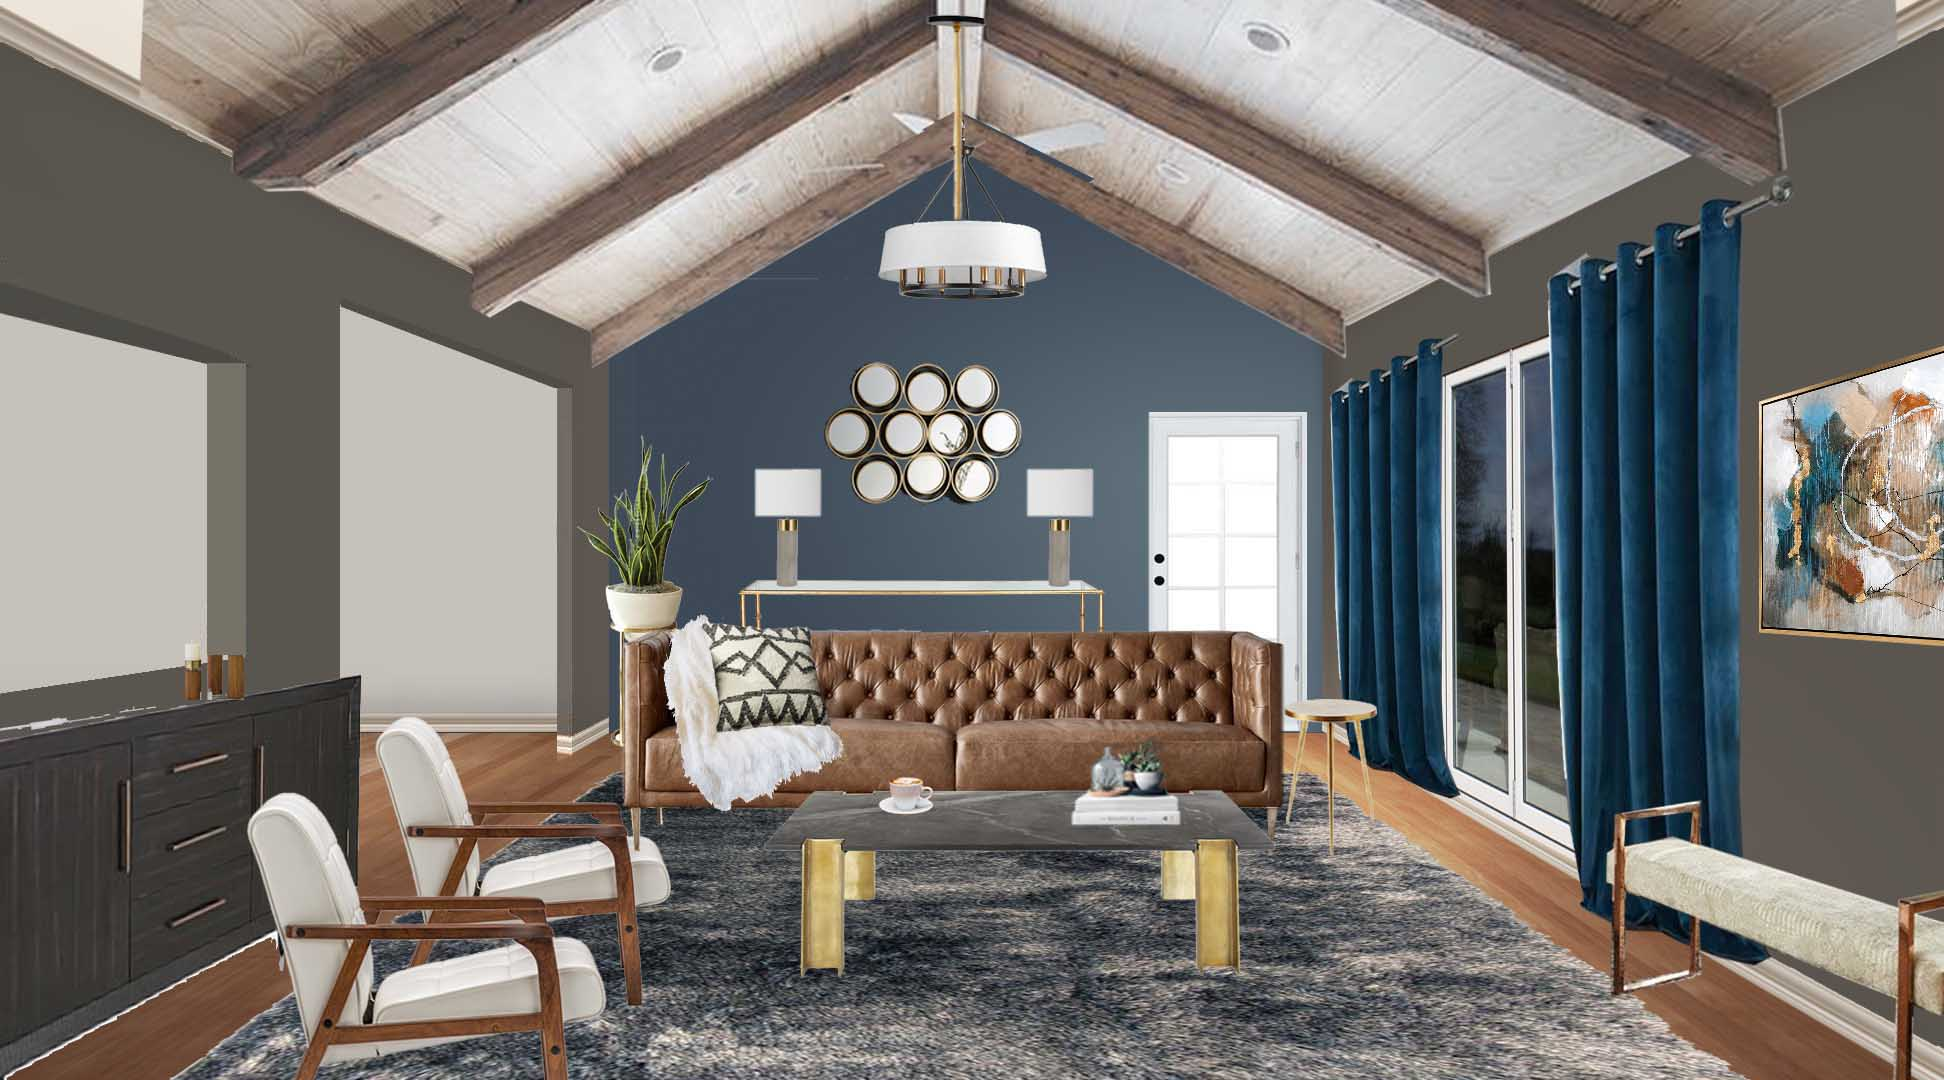 living room interior design pictures paint colors for learn photoshop aylin hafid designs